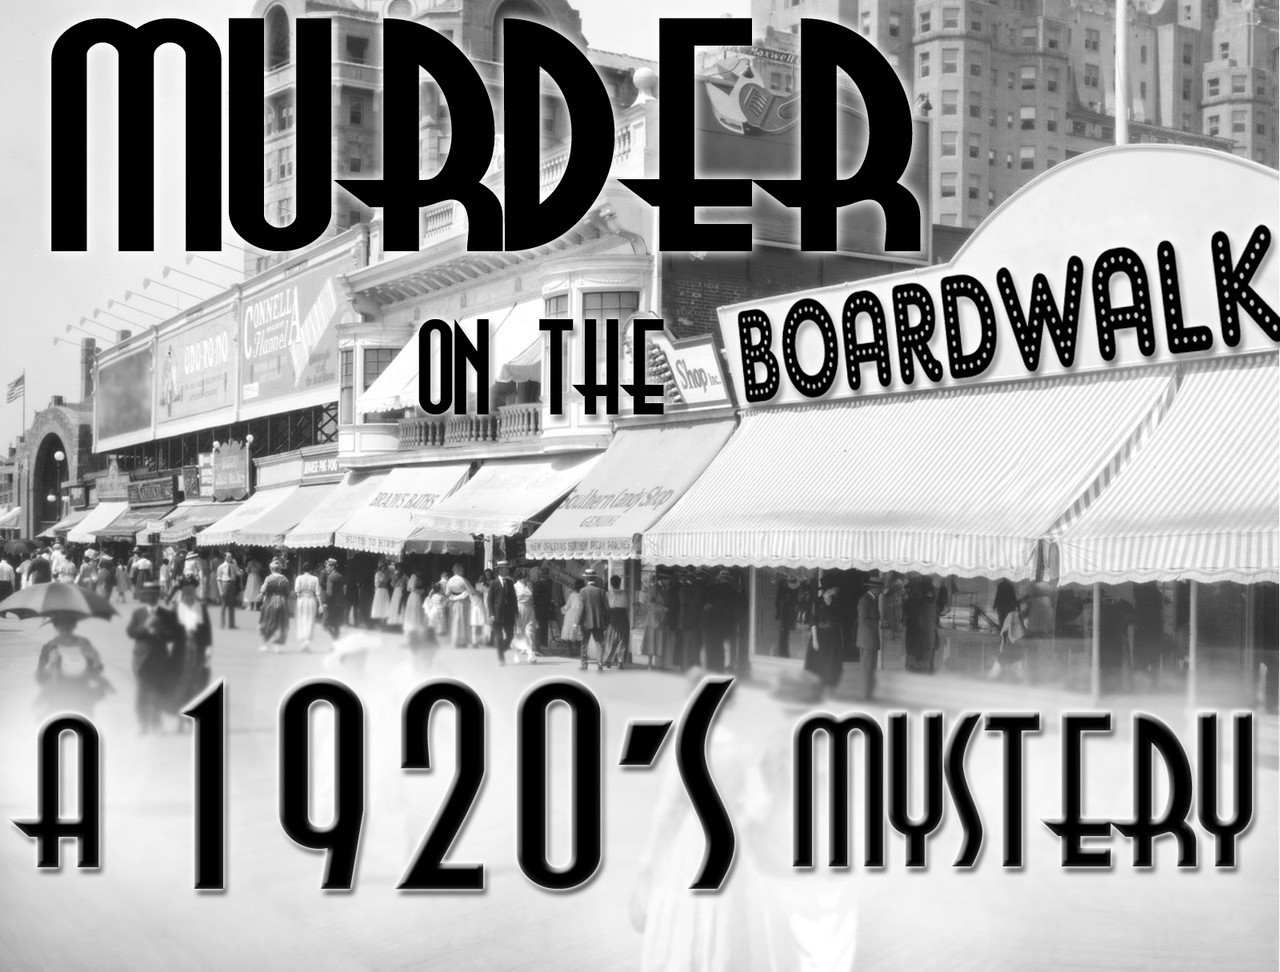 1920s mystery party on the Boardwalk